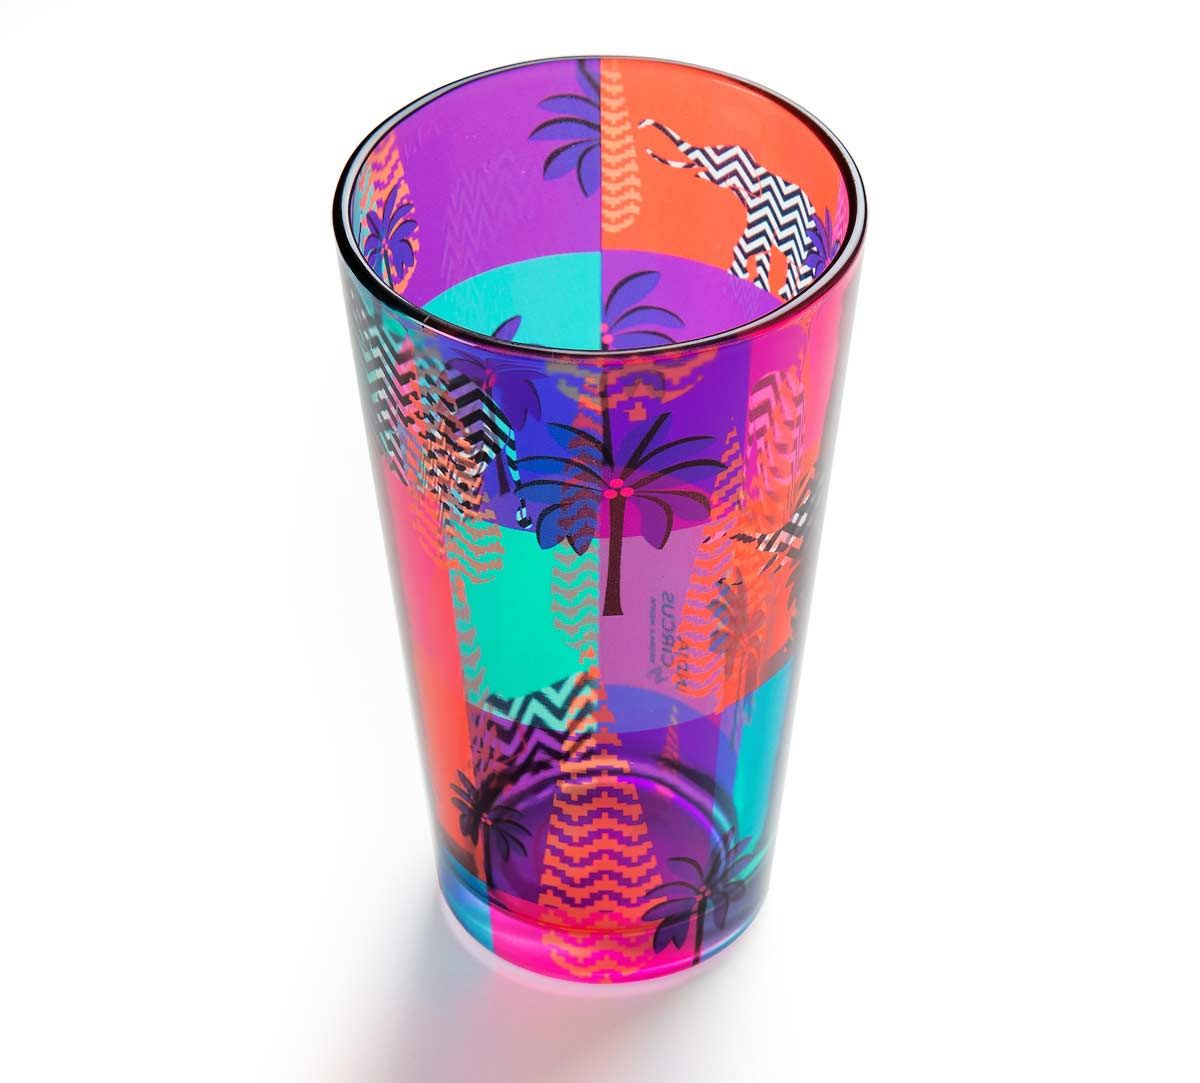 Putative Insignia Glass Tumbler